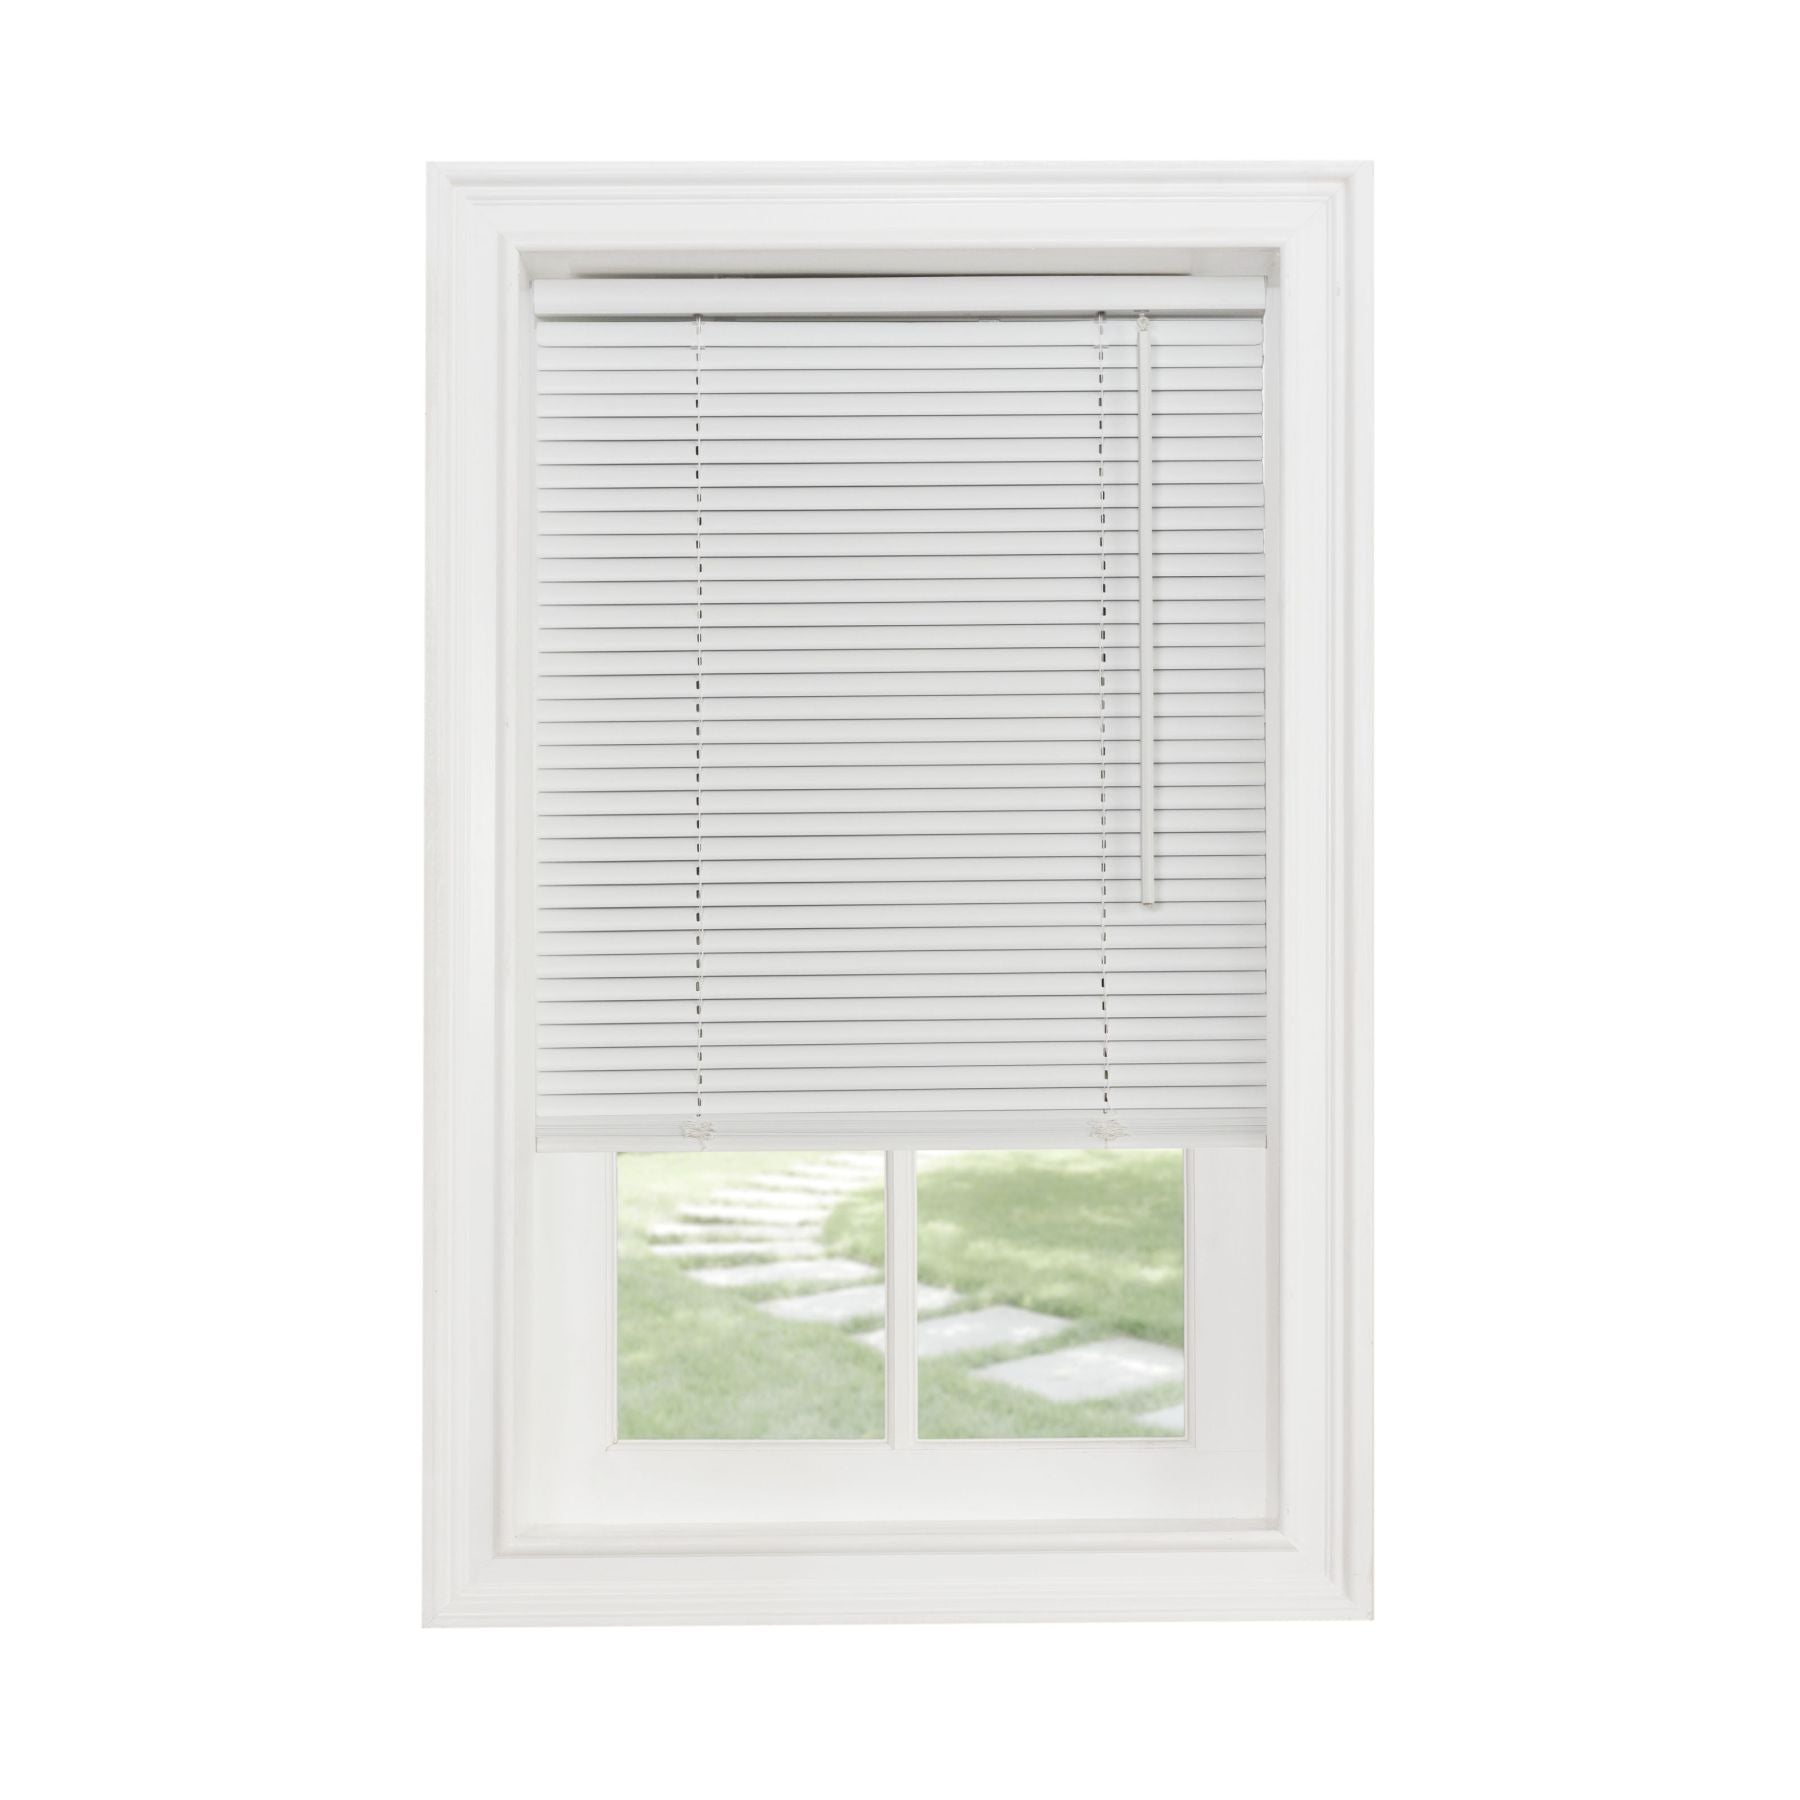 "Traditional Elegance Cordless Sunrise 1"" Light Filtering Mini Blind 27x64 - White"